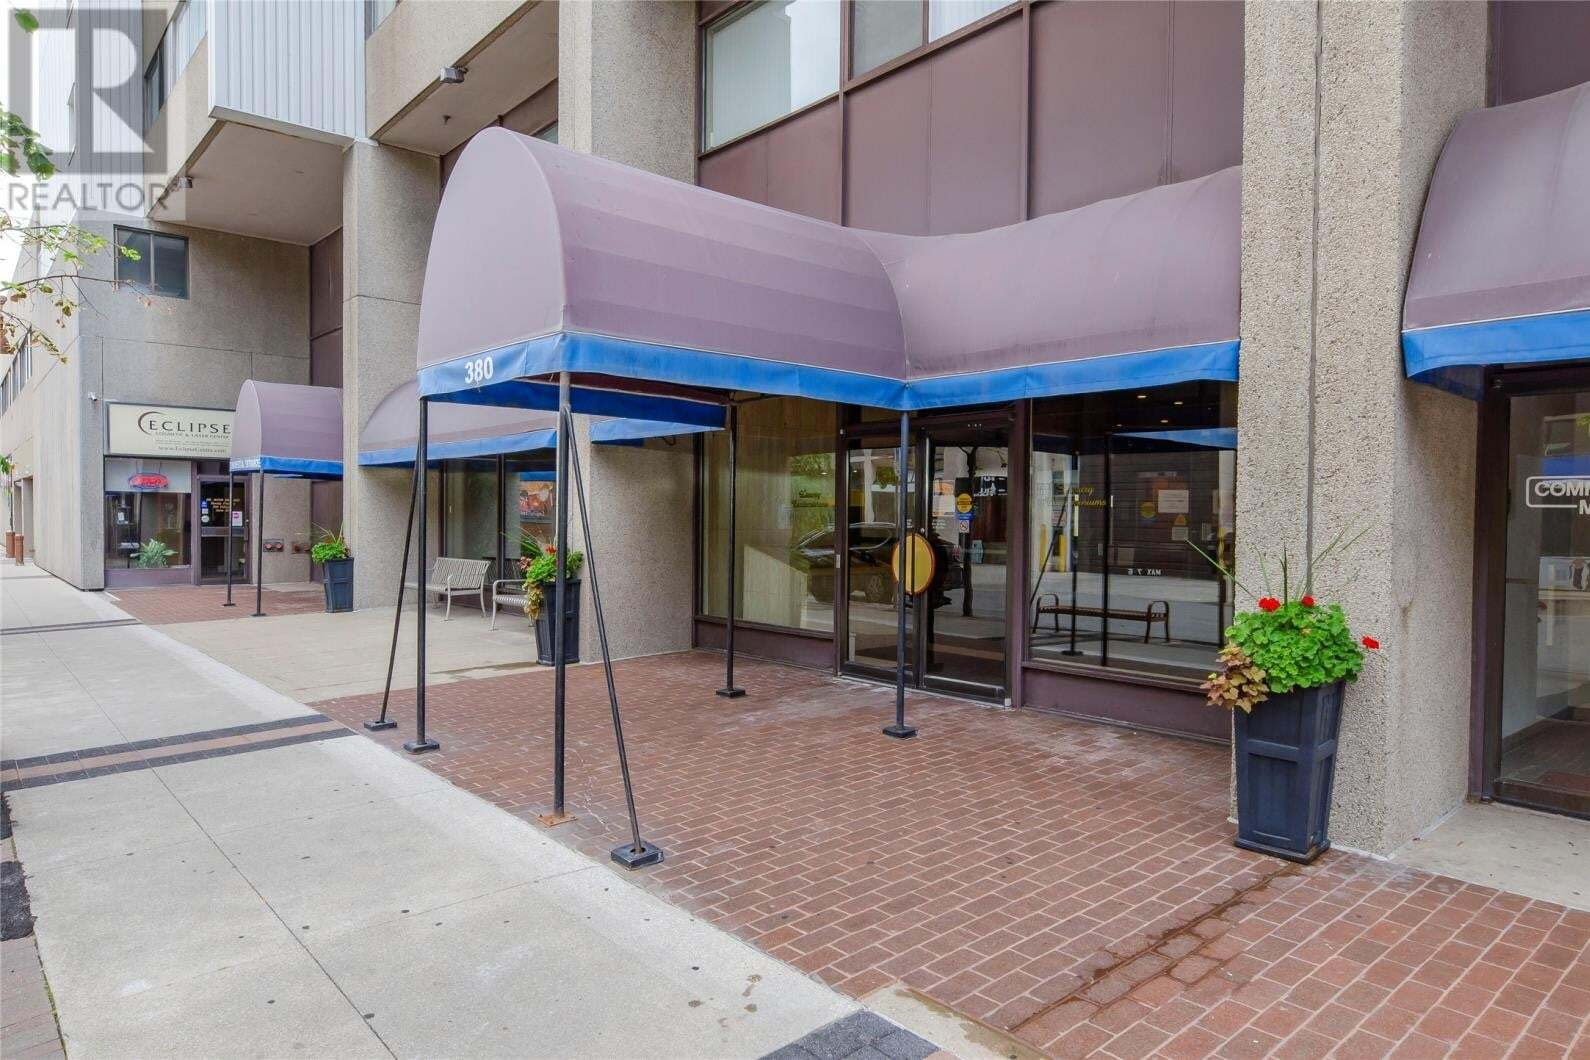 Condo for sale at 380 Pelissier  Unit 2504 Windsor Ontario - MLS: 20011743